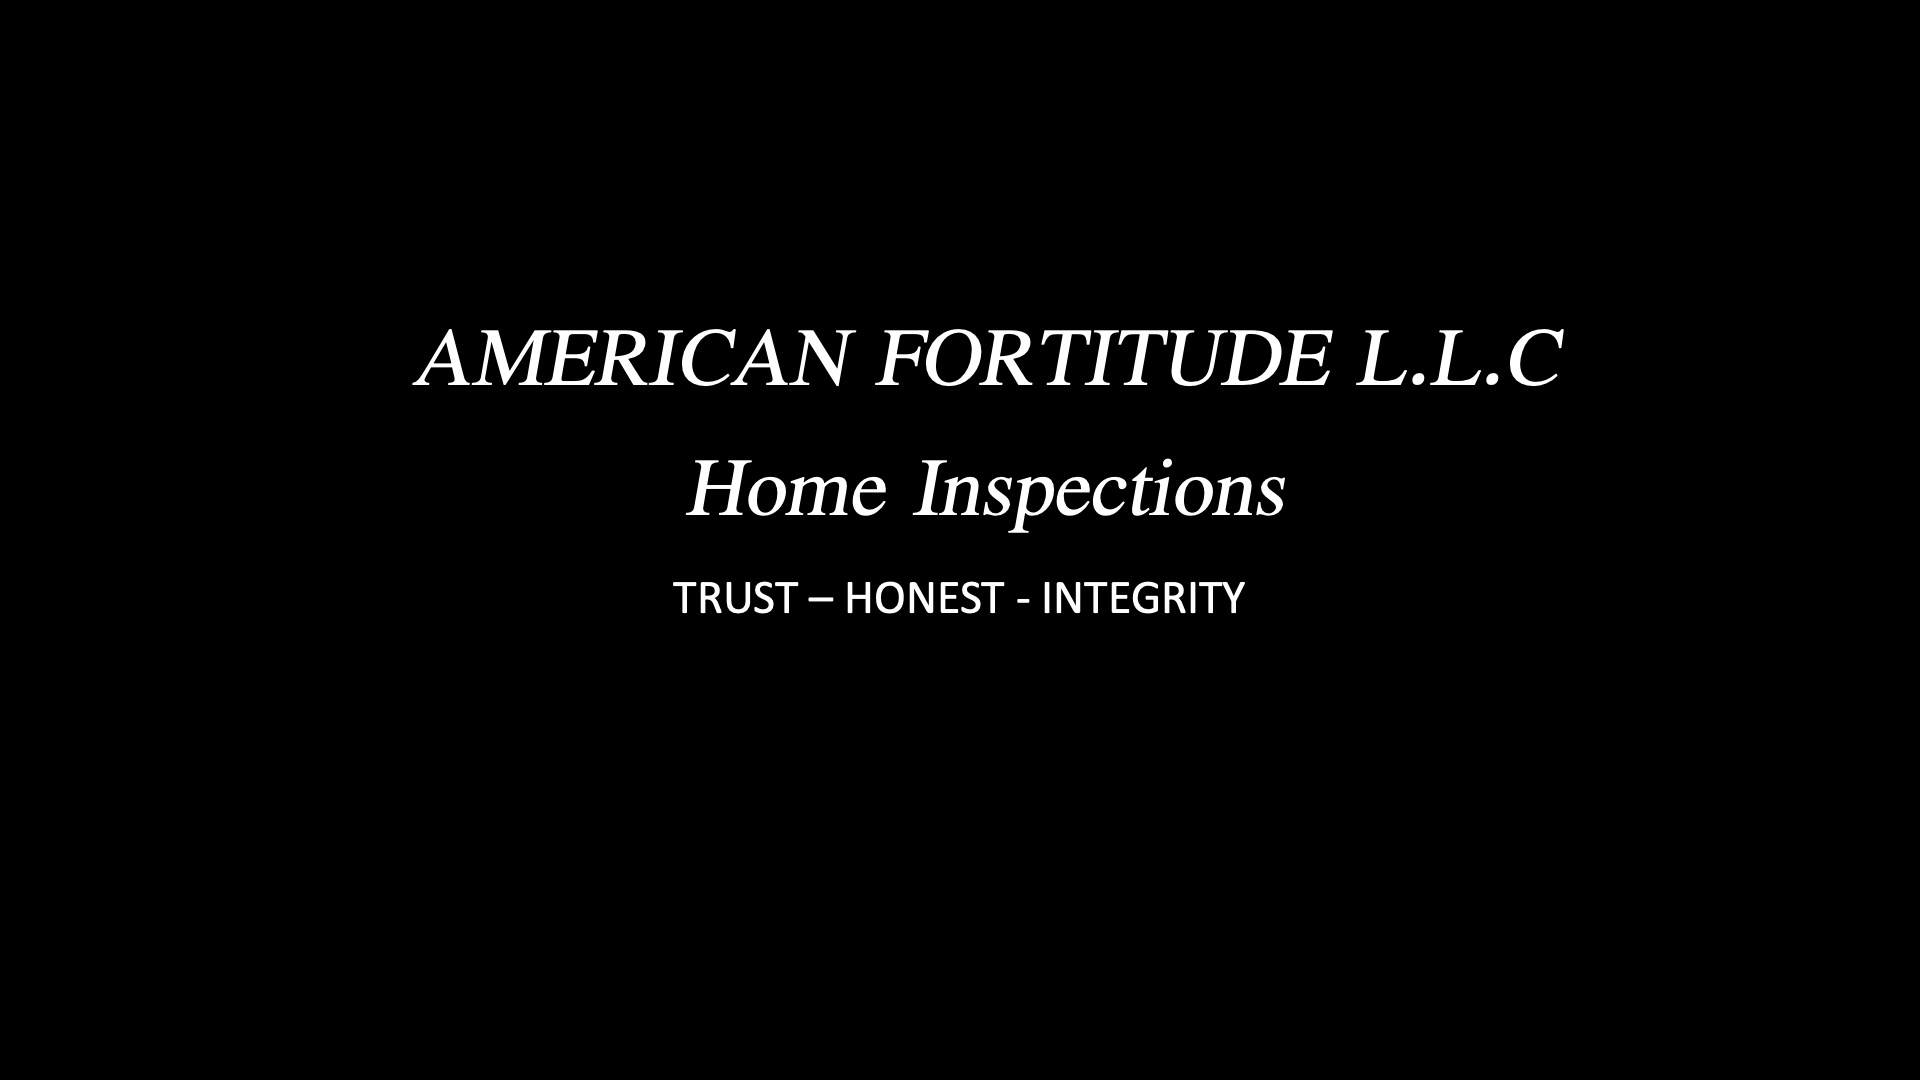 American Fortitude Home Inspections